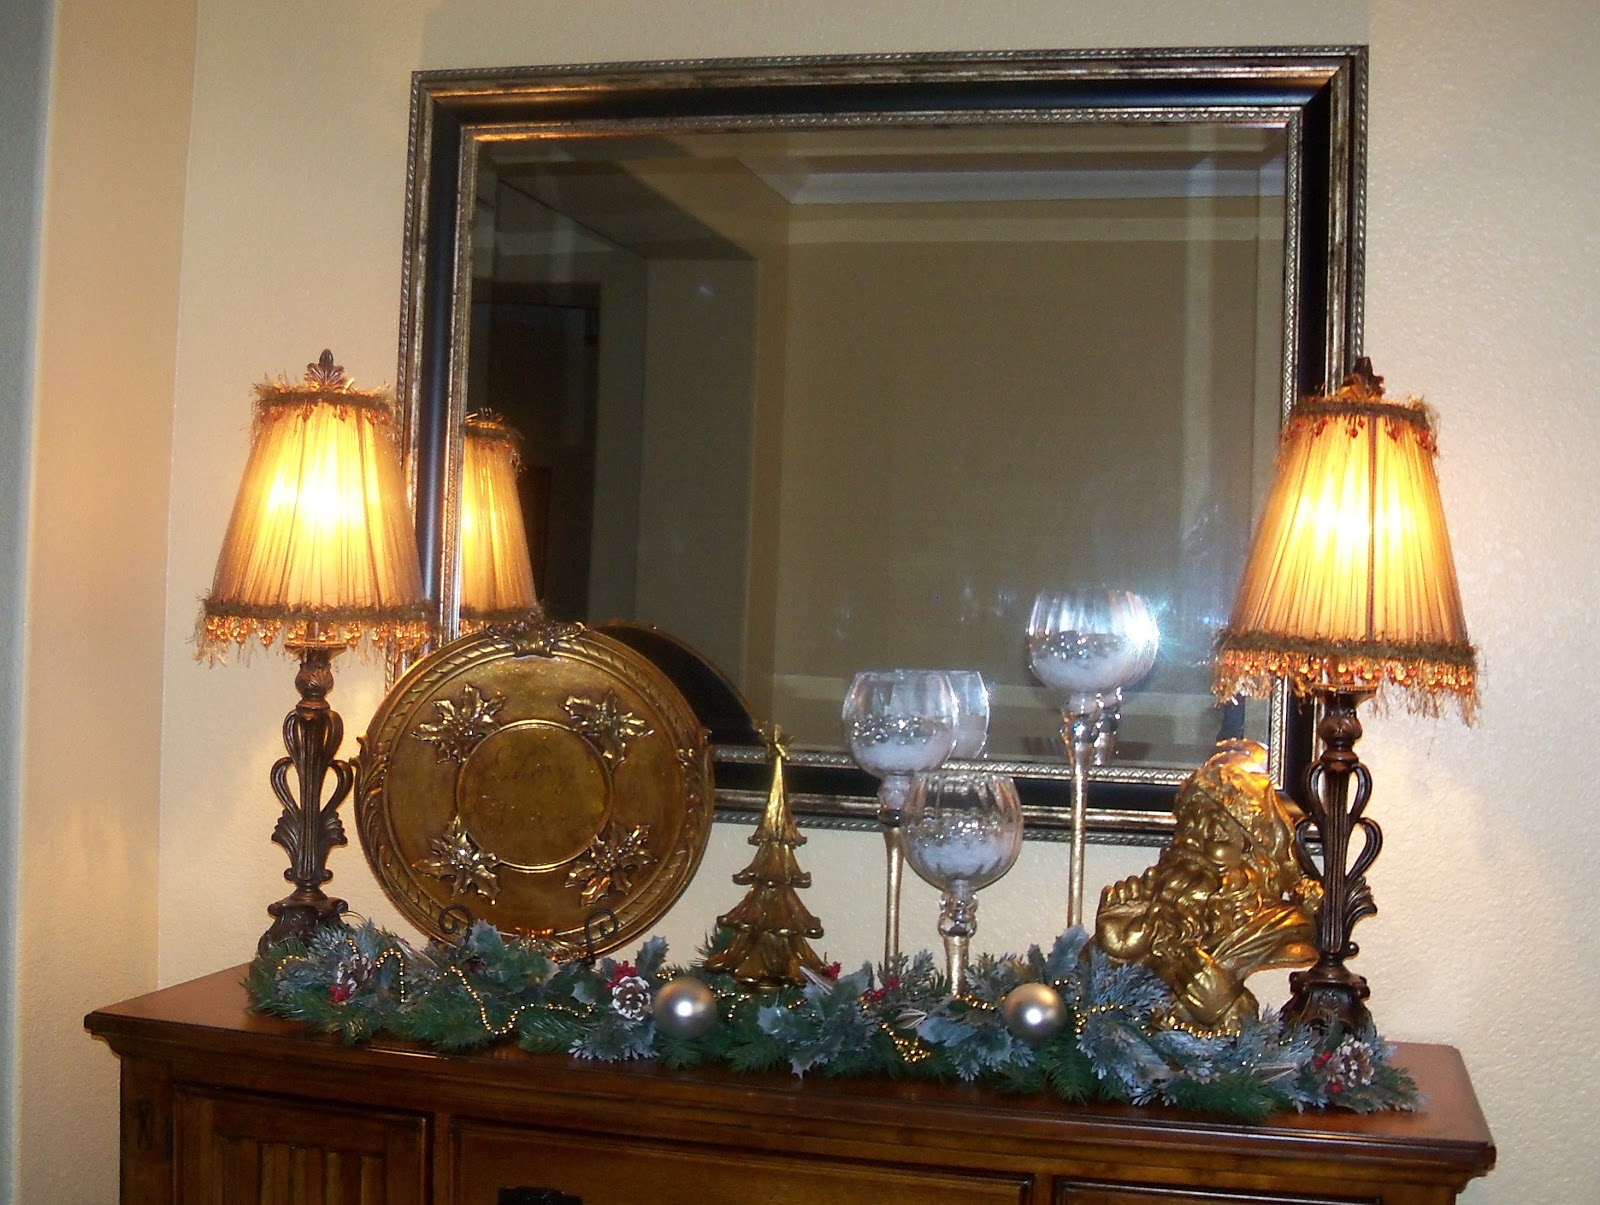 Southern seazons dining room buffet decorated for christmas Decorate my lounge